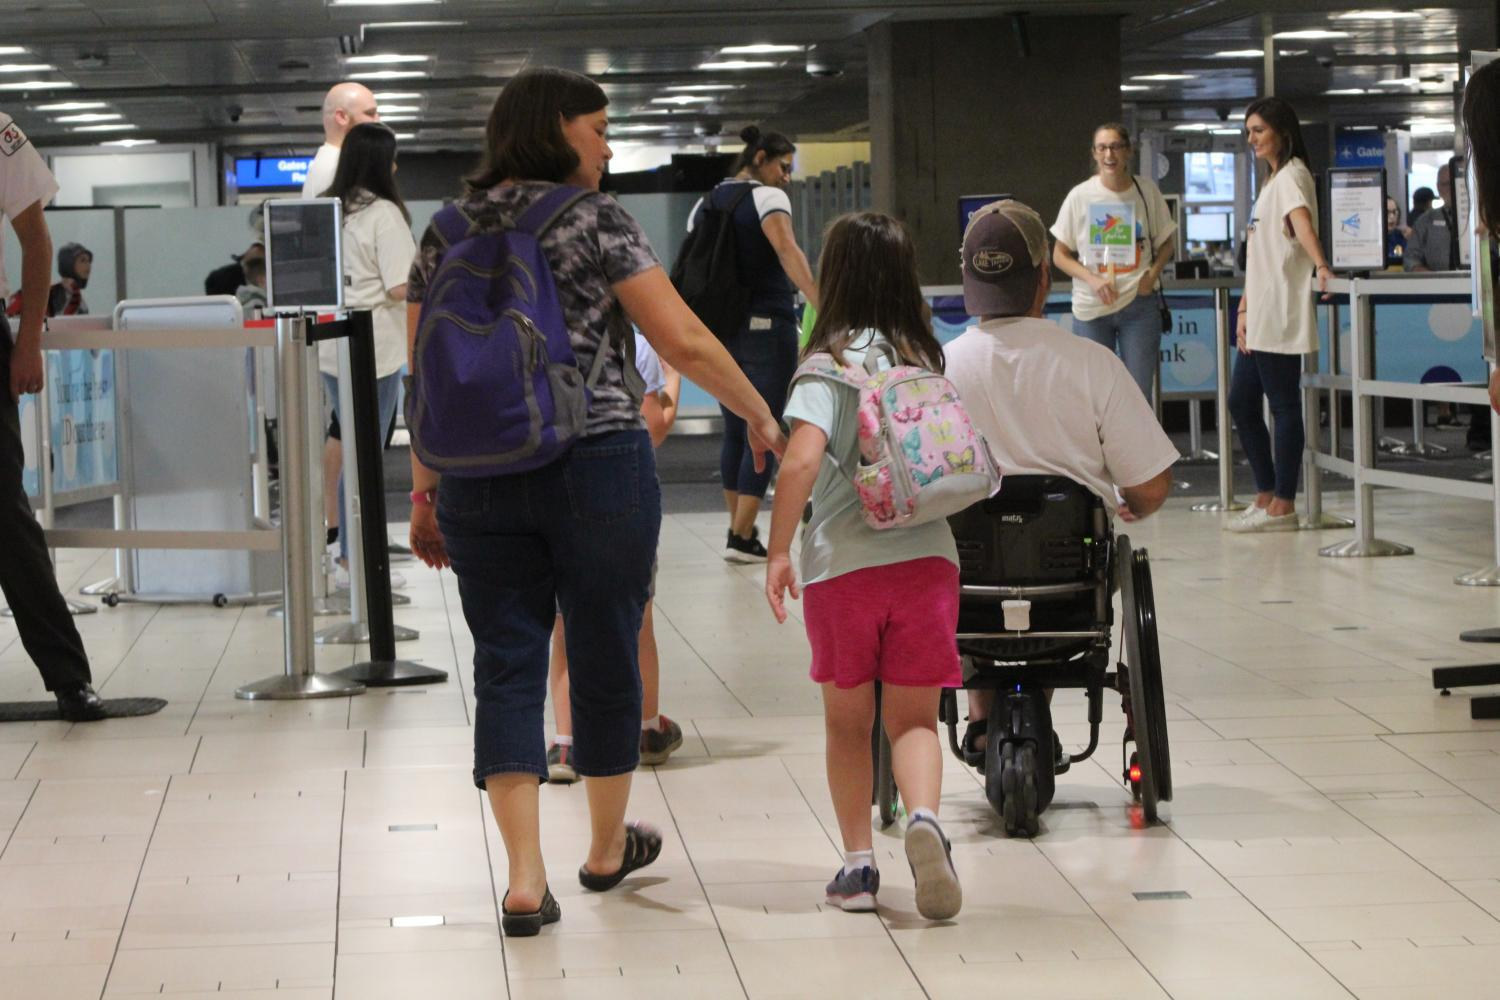 Lisa Celano goes through security with her 11-year-old twins who have Down syndrome and autism.